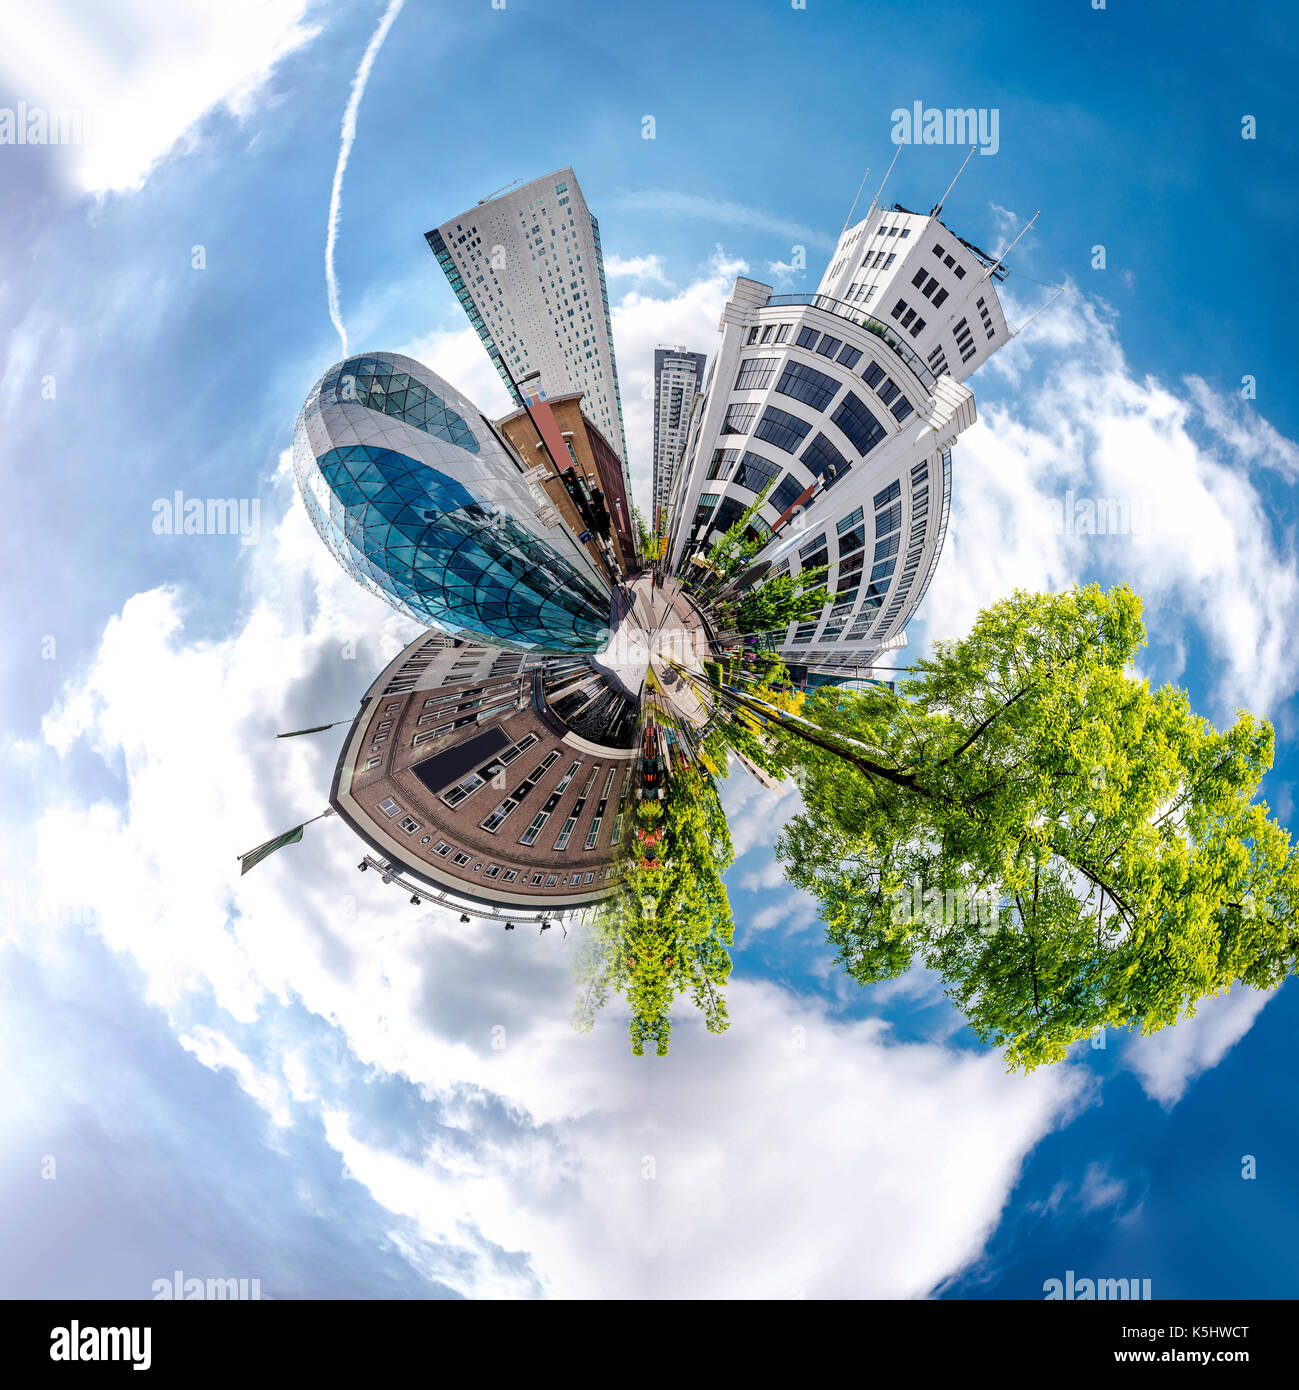 Little planet 360 degree sphere. Panorama of Eindhoven city, Netherlands Stock Photo